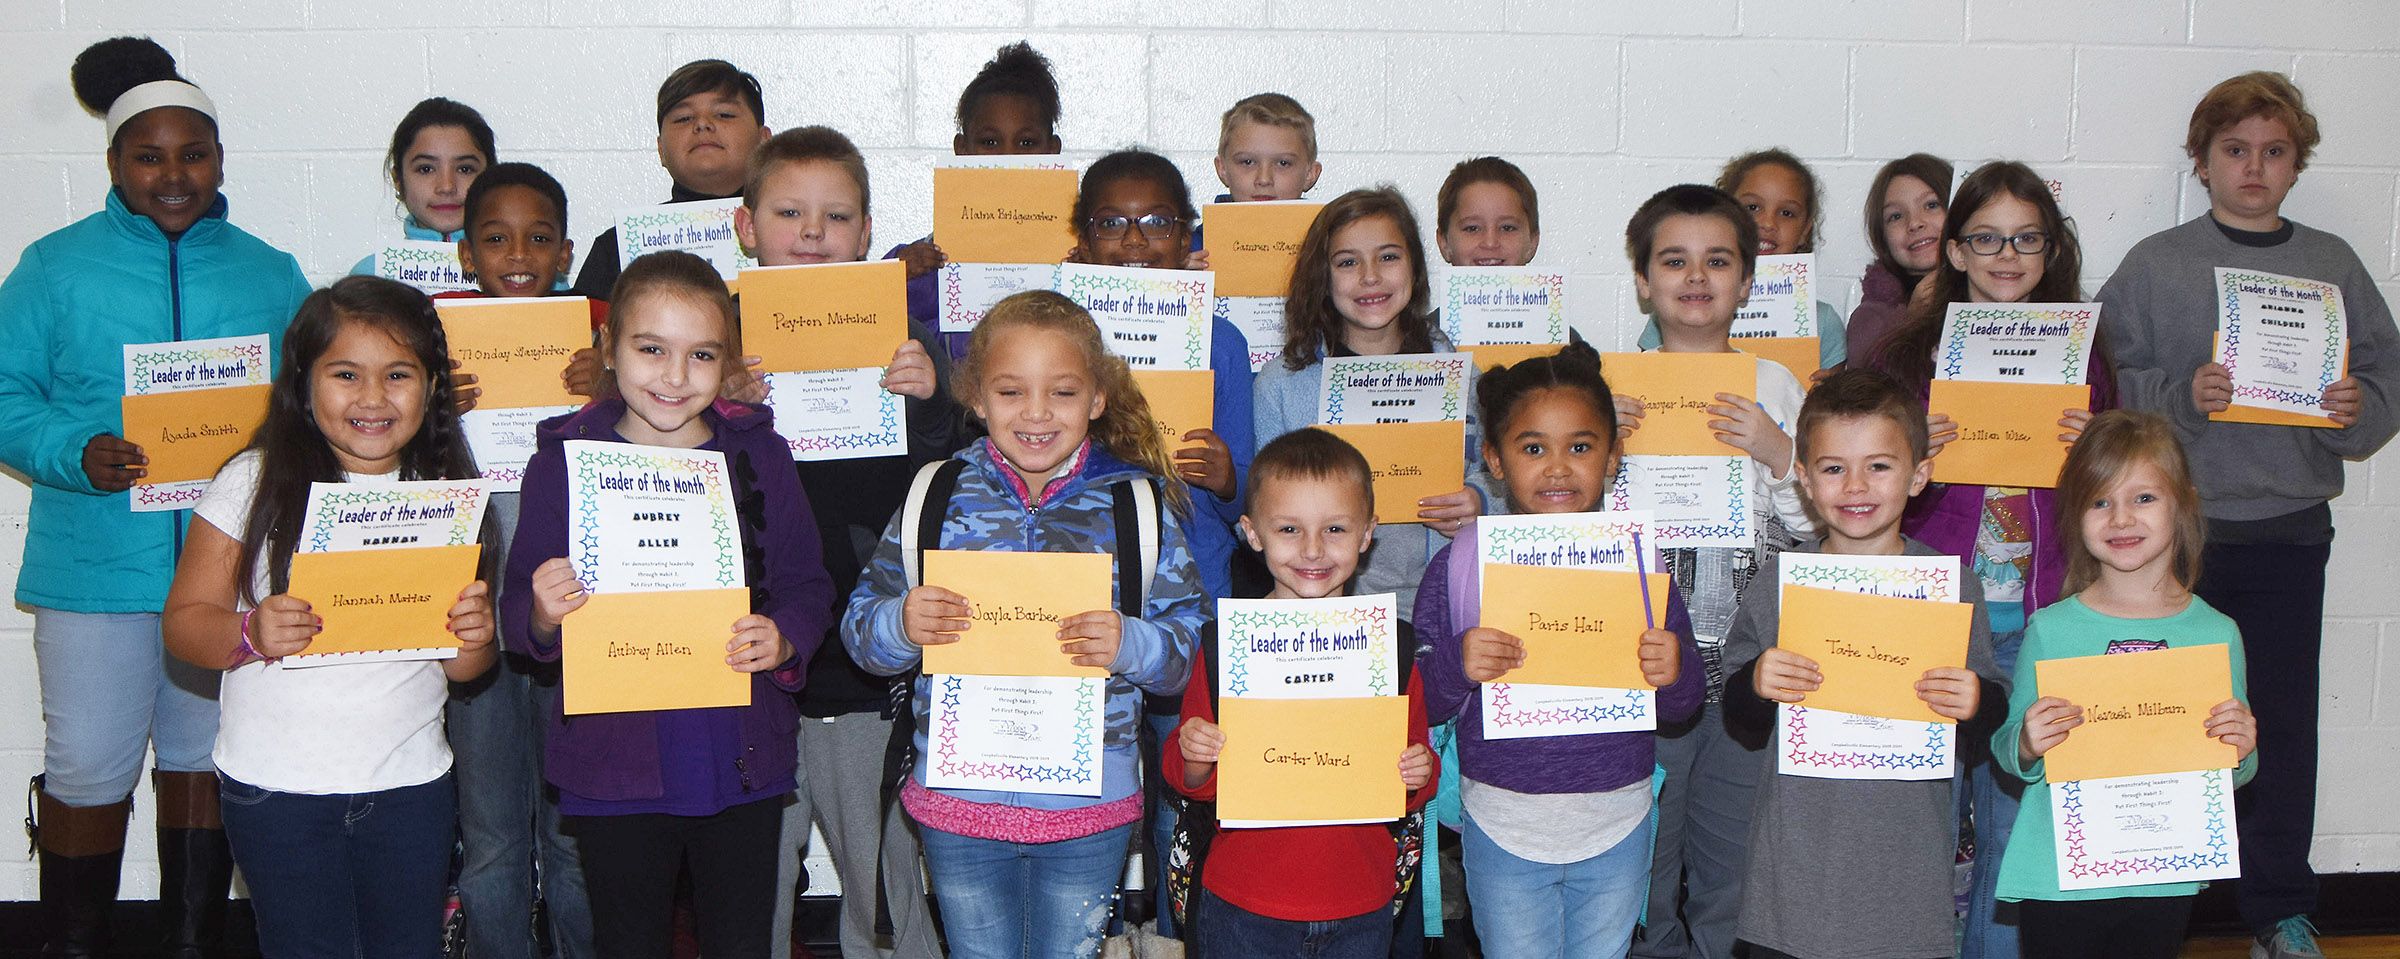 From left, front, are second-graders Hannah Matias and Aubrey Allen, kindergartener Jayla Barbee, first-grader Carter Ward and kindergarteners Paris Washington-Hall, Tate Jones and Nevaeh Milburn. Second row, fifth-grader TiOnday Slaughter, fourth-grader Peyton Mitchell, third-graders Willow Griffin, Karsyn Smith and Sawyer Lange and fourth-grader Lilly Wise. Back, fourth-grader Ajada Smith, fifth-graders Eva Bledsoe and Brayden Paiz, first-grader Alaina Bridgewater, fourth-grader Camren Skaggs, second-grader Kaiden Bradfield, third-grader Keiava Thompson, second-grader Melody Ward and fifth-grader Arianna Childers. Absent from the photo are kindergarteners Gianni Gribbins and Amarya Penn-Thompson, first-graders Jacob Parrish and Kingston Cowherd and fifth-grader Kiera Bailey.